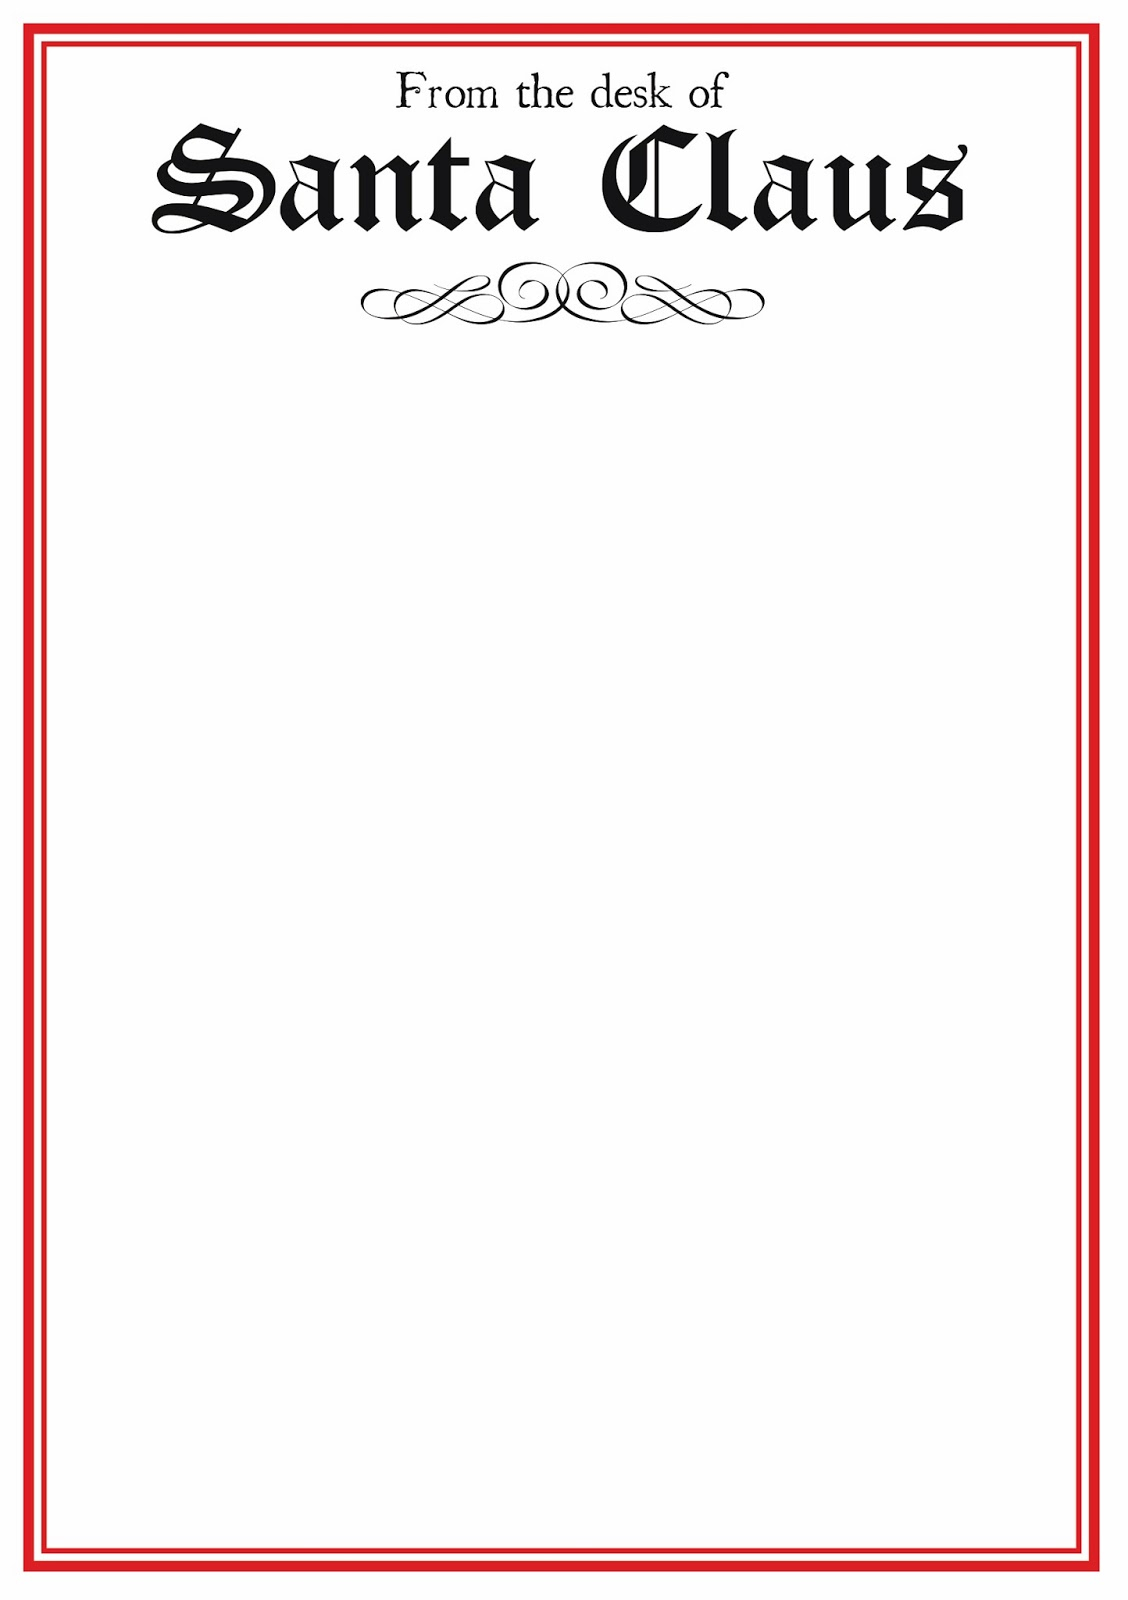 Free Letter to Santa Template Word - Word Santa Letter Template Acurnamedia